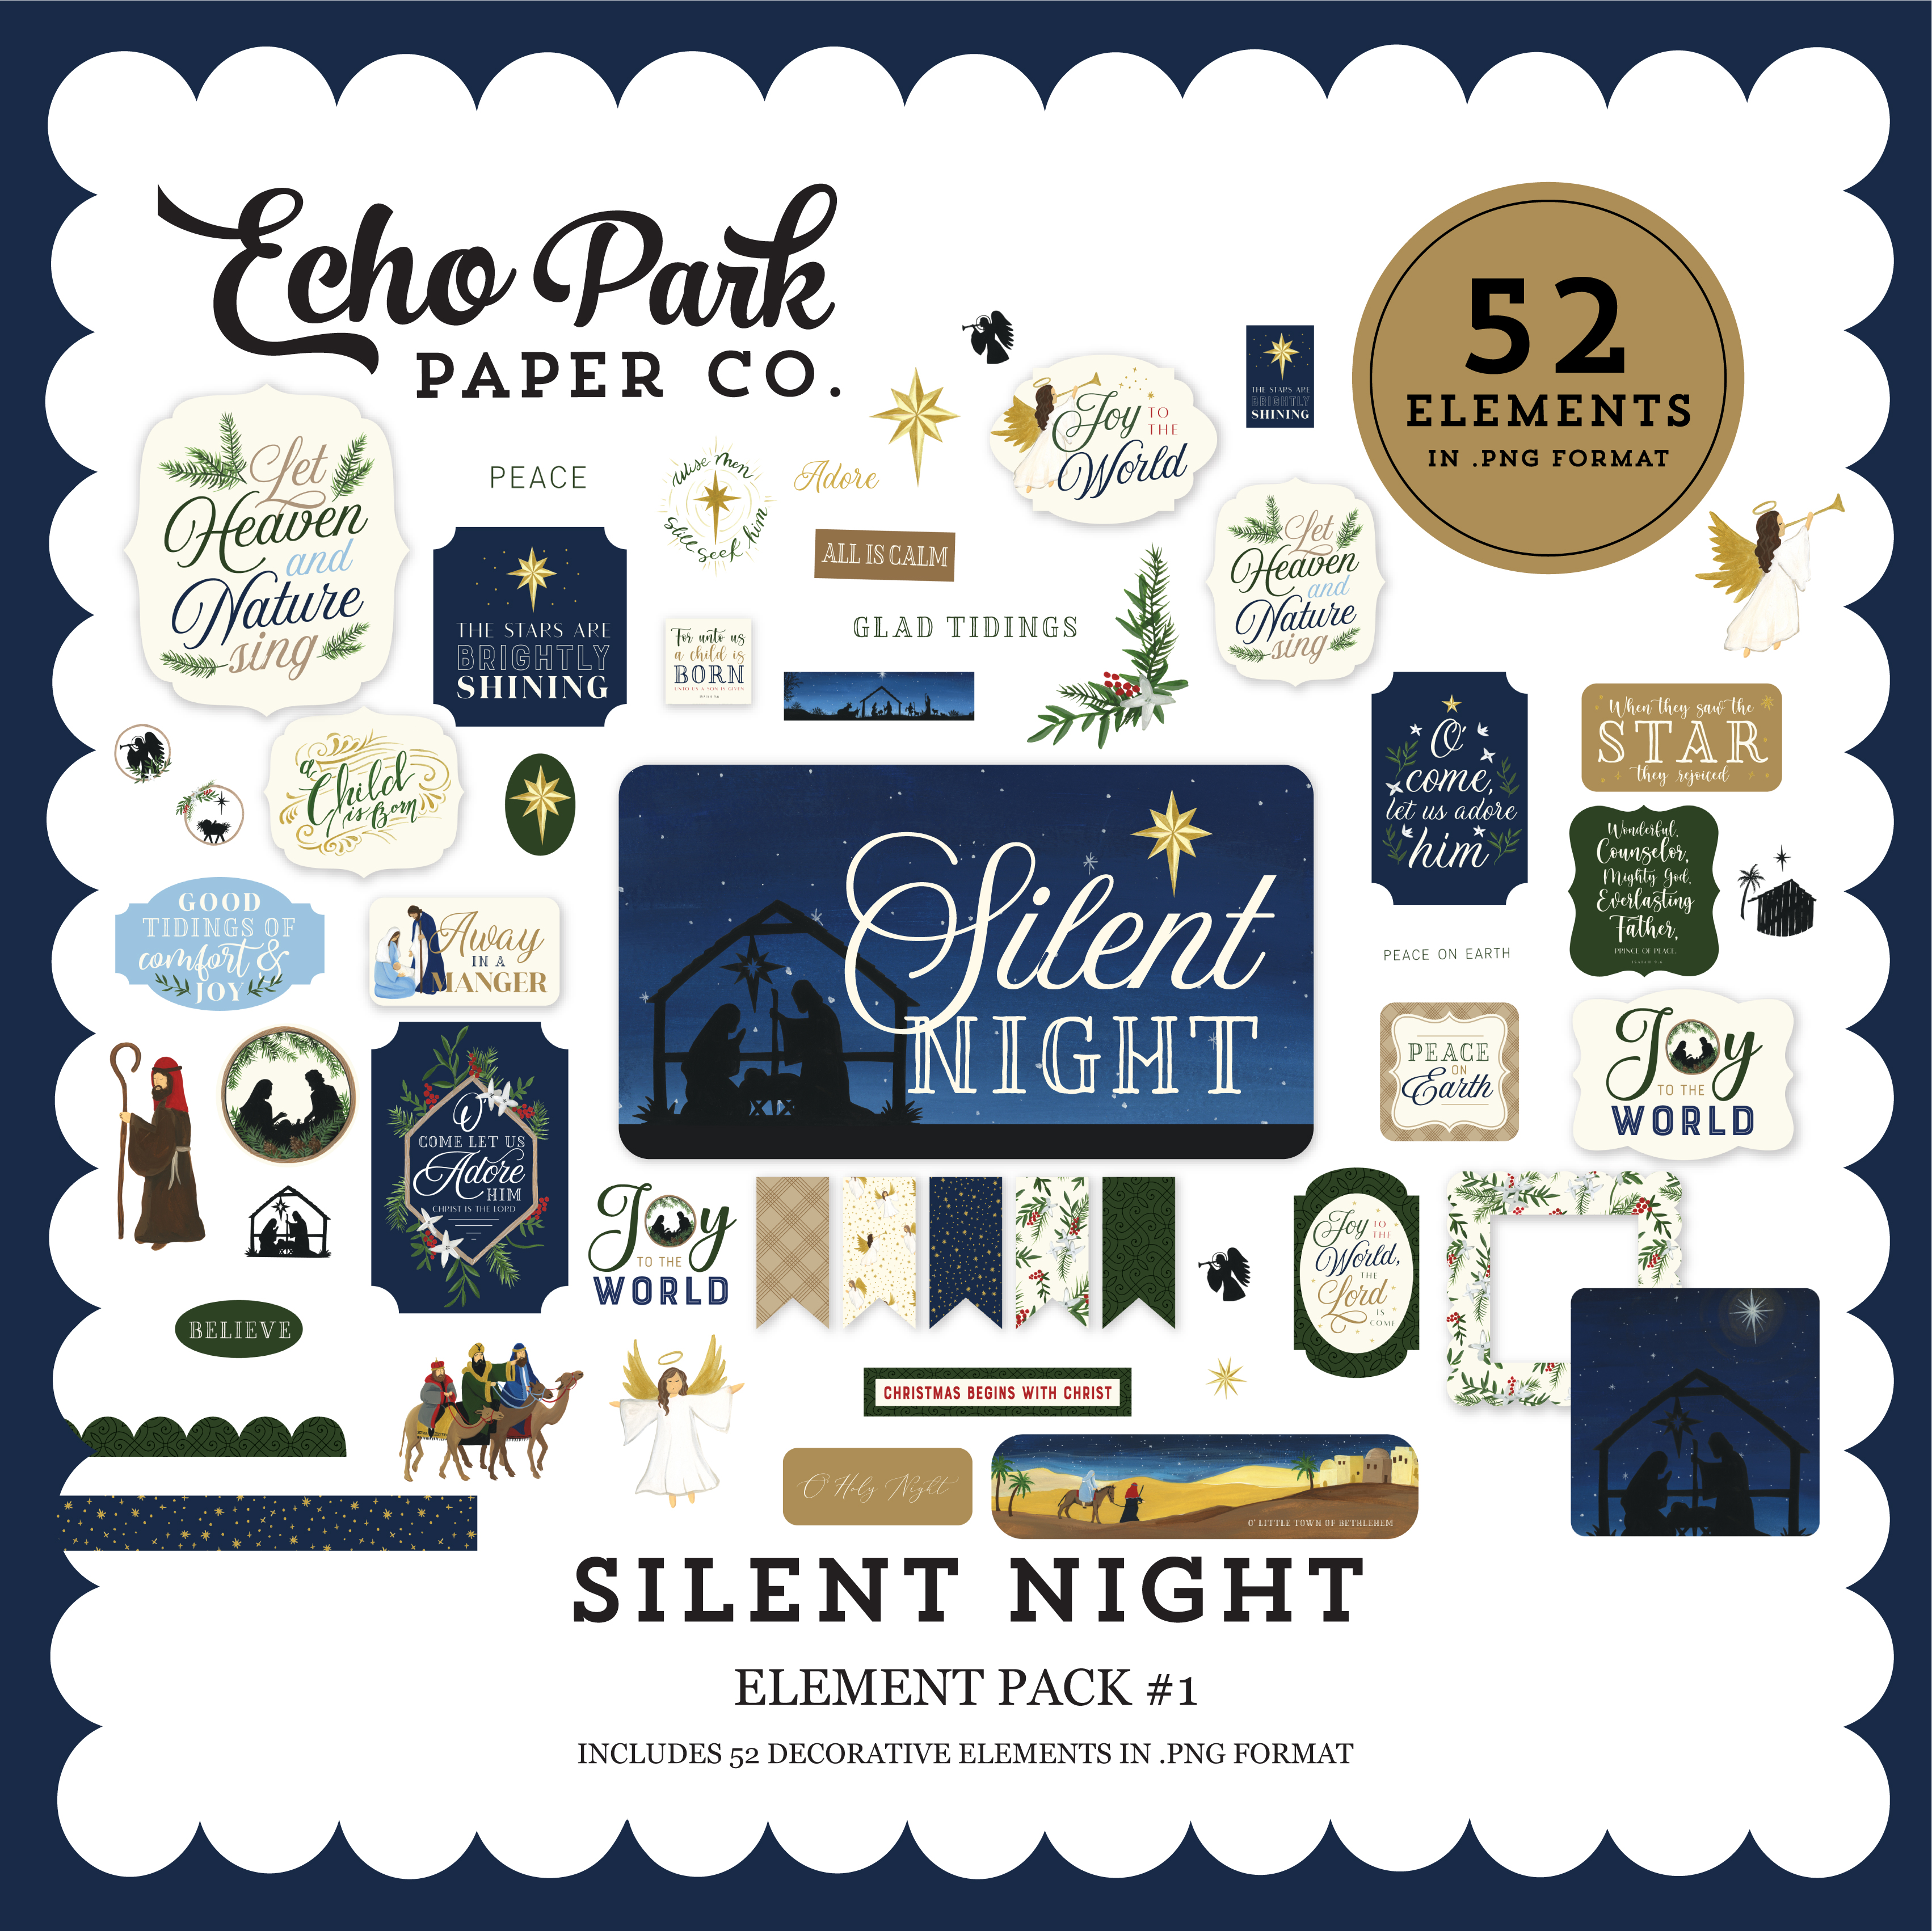 Silent Night Element Pack #1